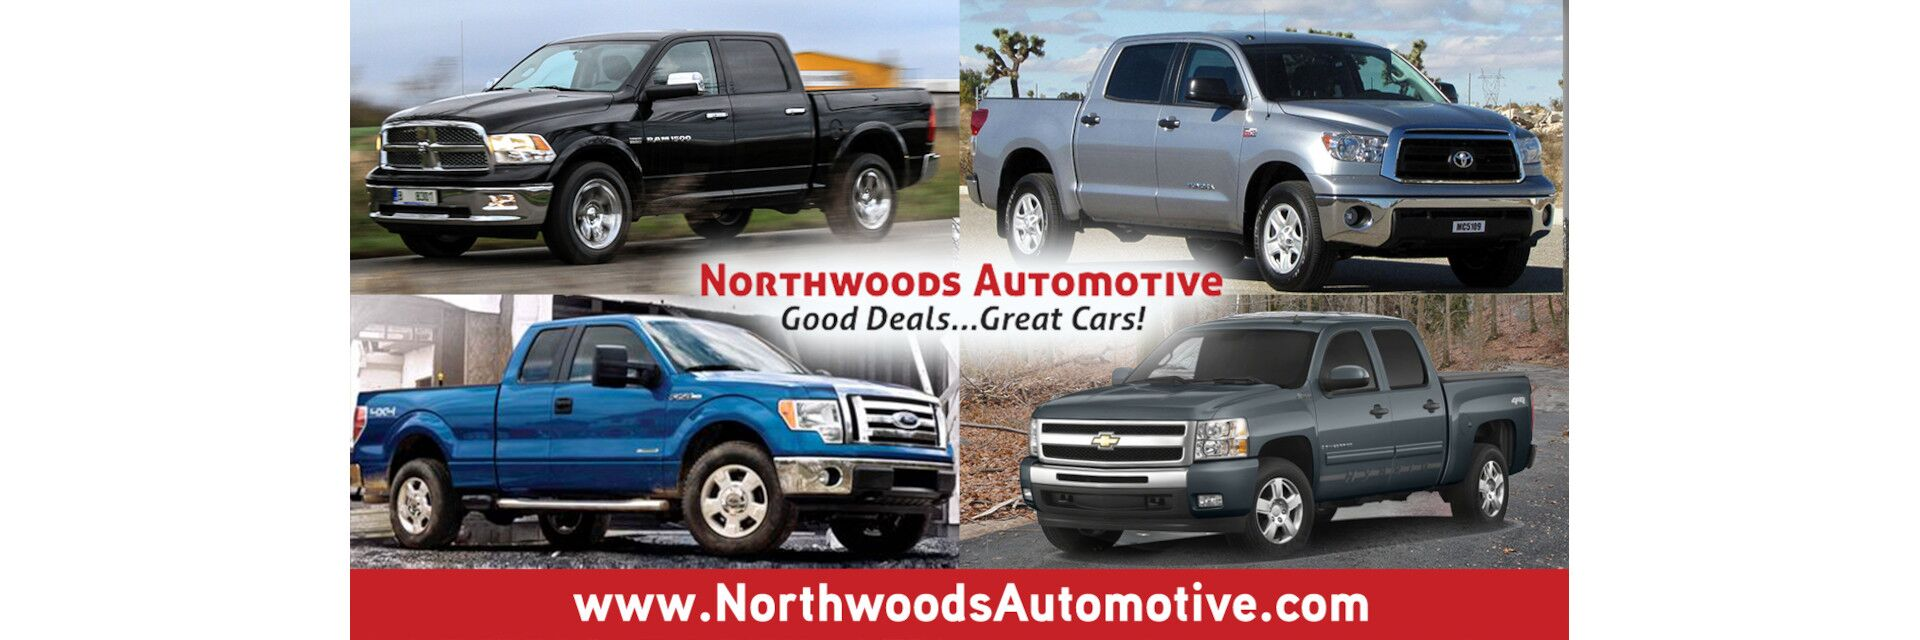 Good Deals Great Cars